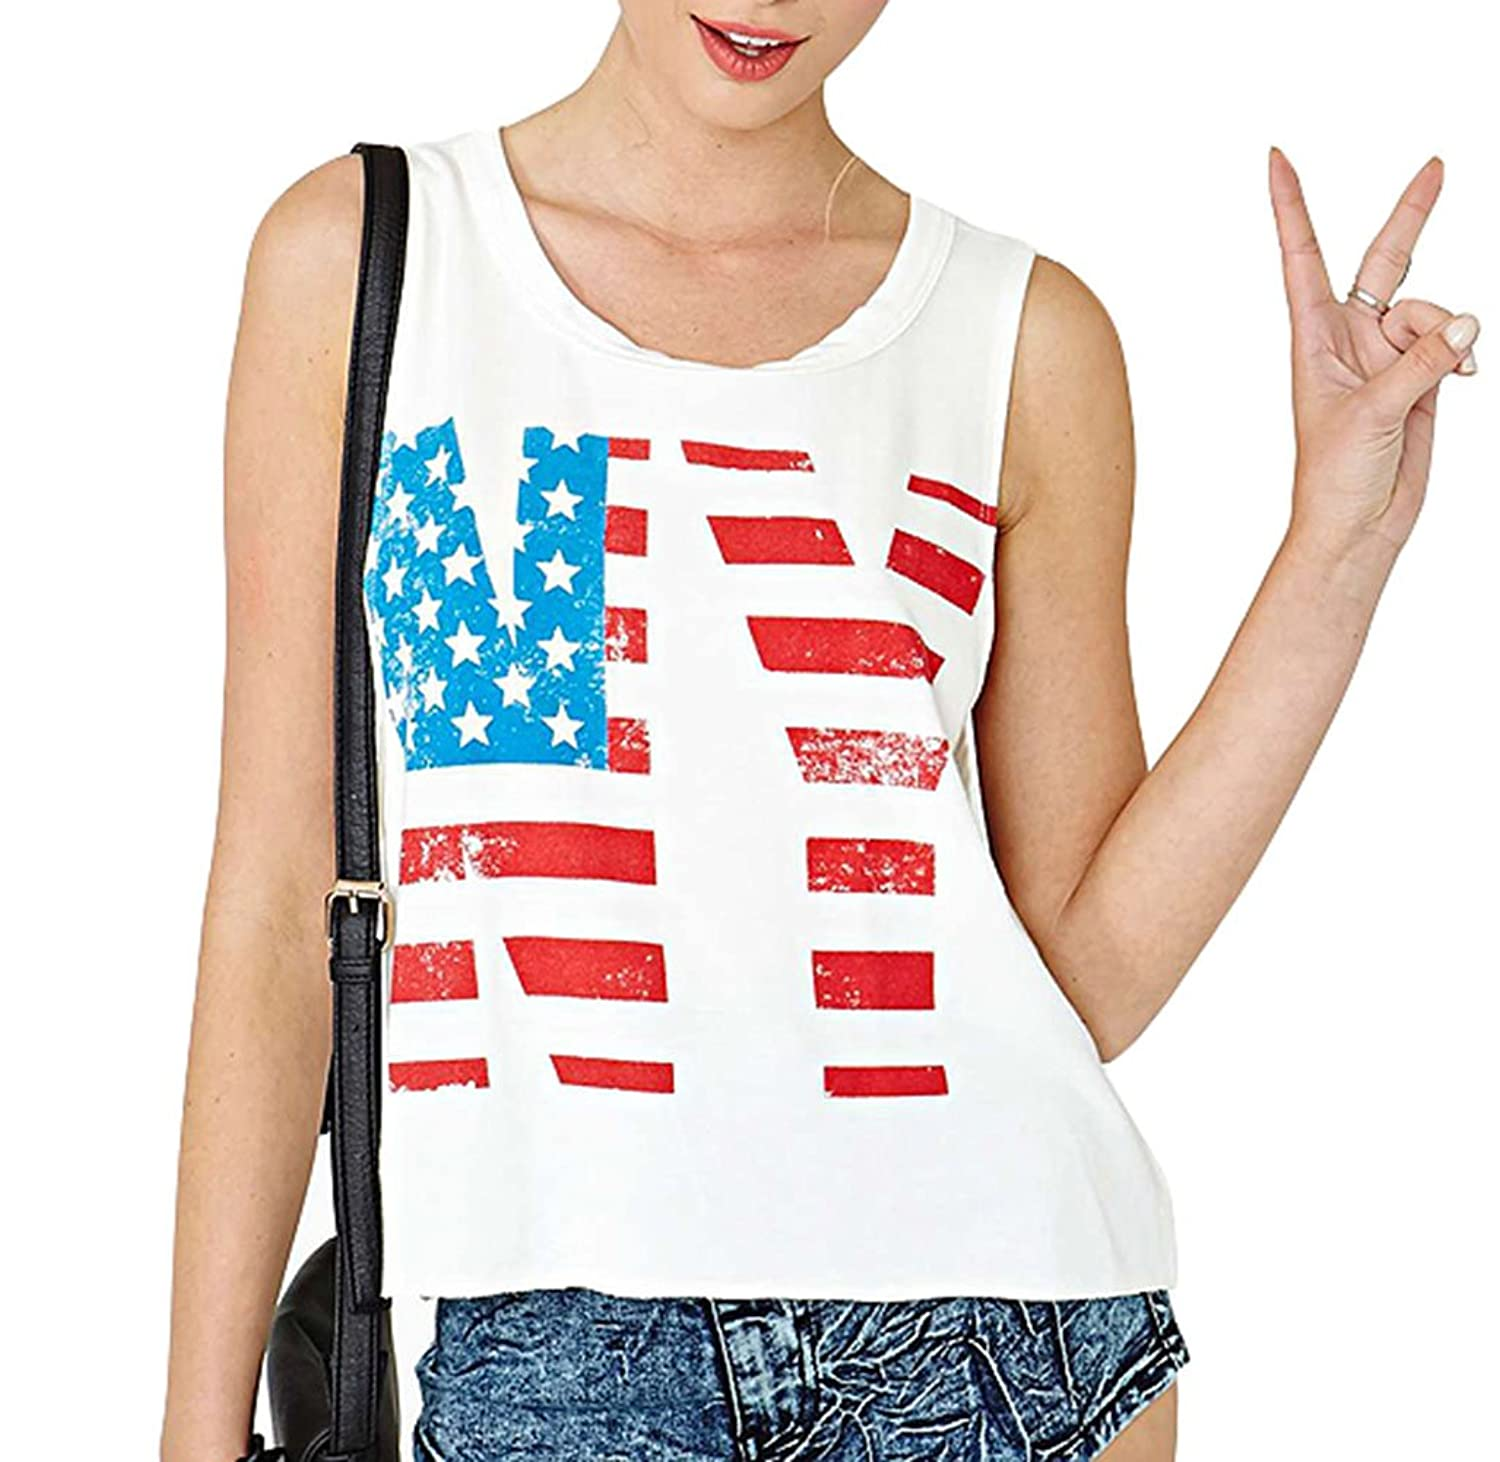 Summerwhisper Women's Vintage Flag Printed Party Tank Top T-Shirt White